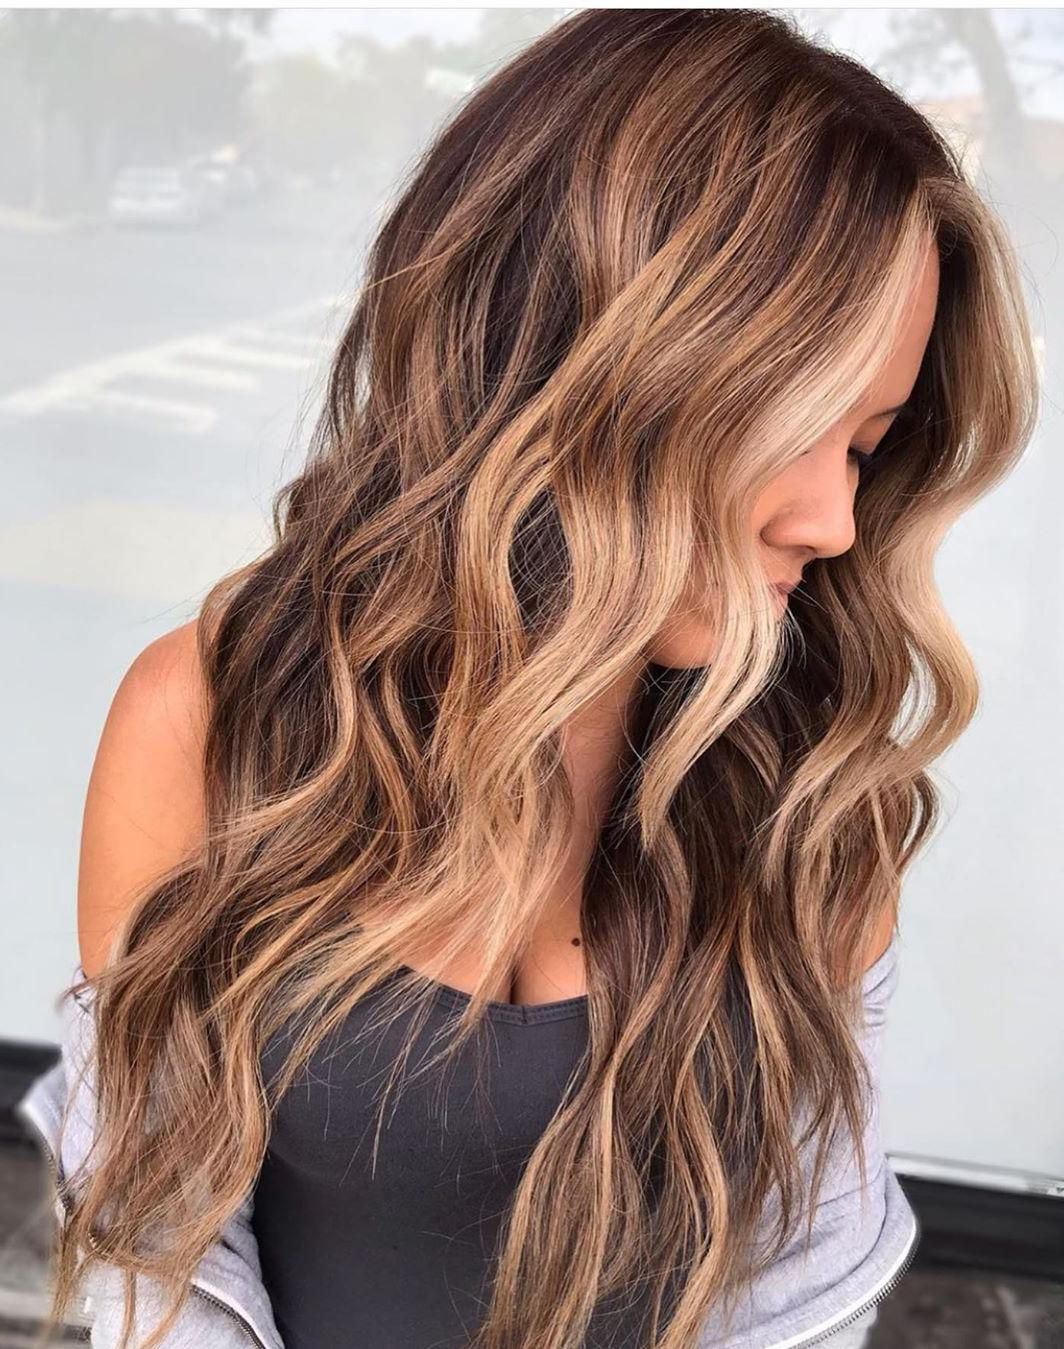 60 Classy Colors Ideas For Women Hairstyle Edgy Hair Color For Brunettes Edgy Hair Color 2020 Long Hair Ideas Ombr Spring Hair Color Long Hair Trends Edgy Hair